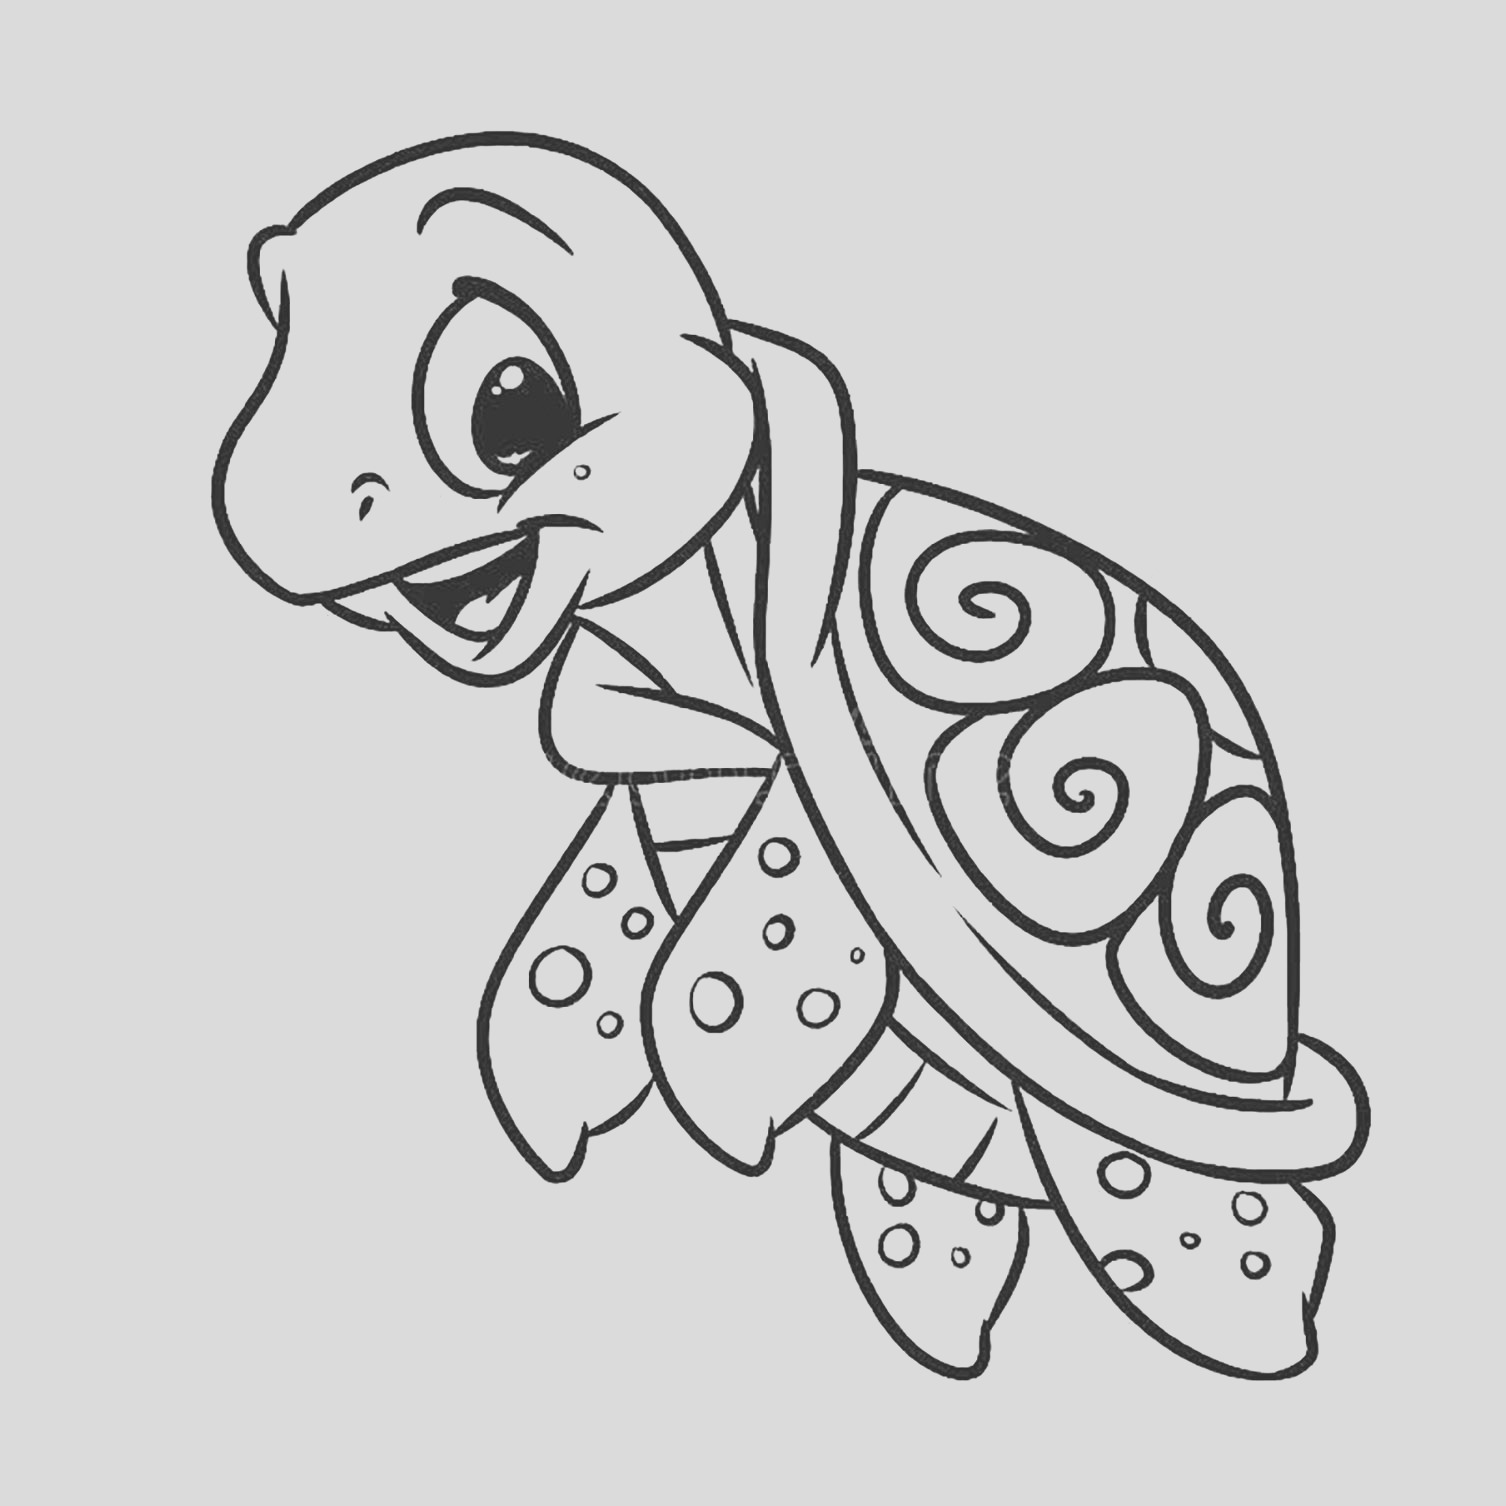 image=turtles coloring pages for children turtles 6388 1